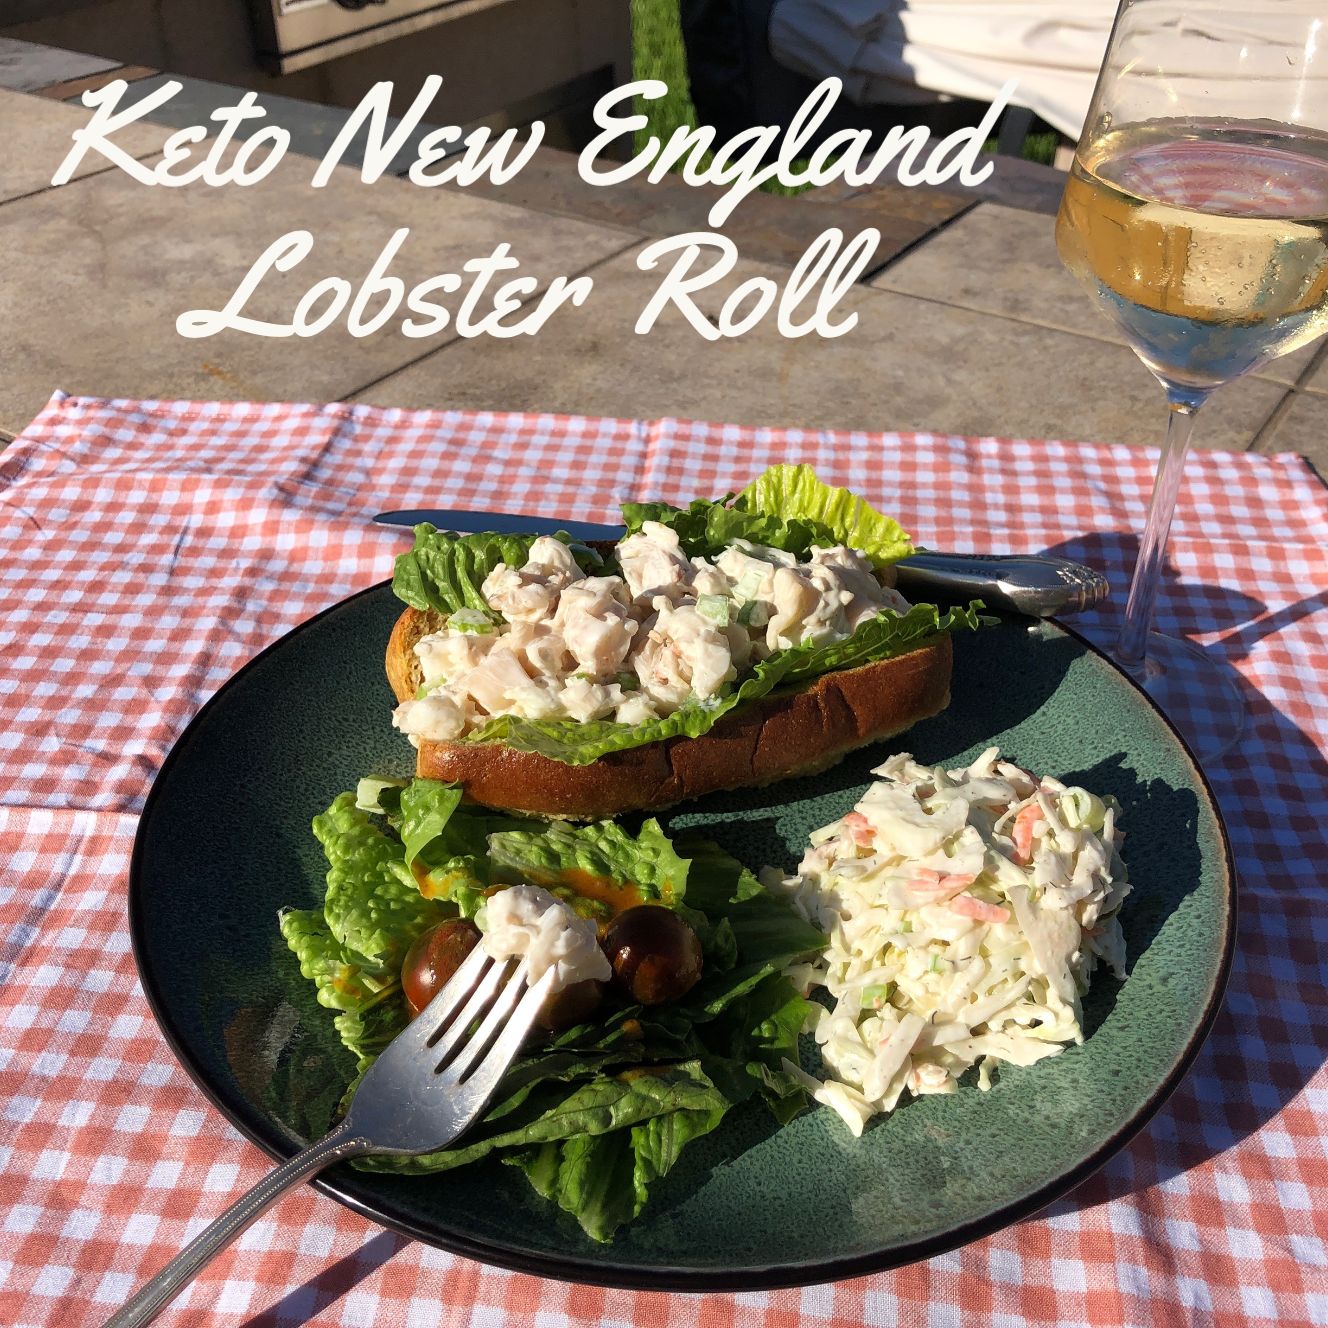 Lobster roll, Low carb keto recipes